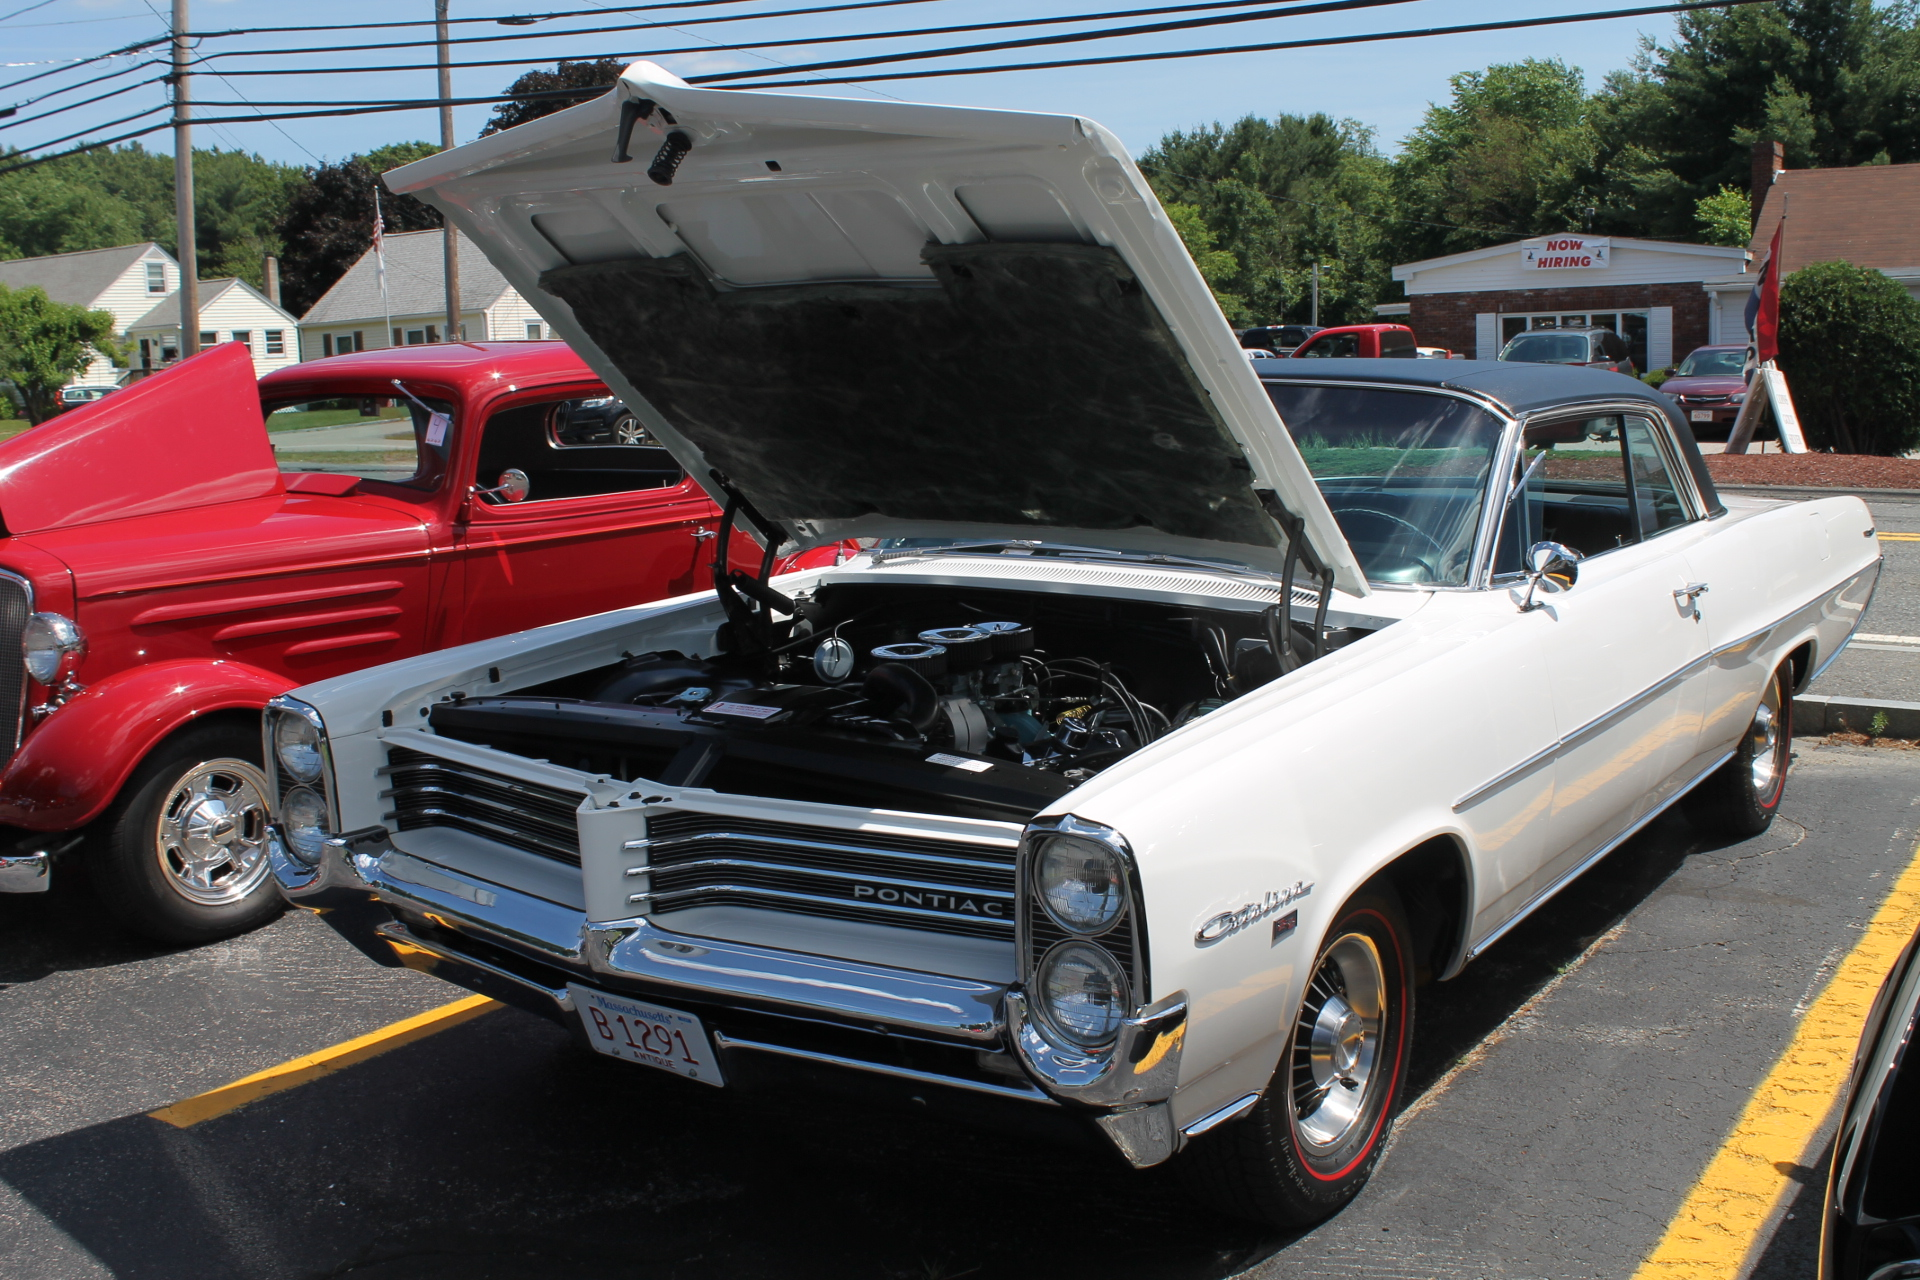 1964 Pontiac Catalina A Big Hot Poncho